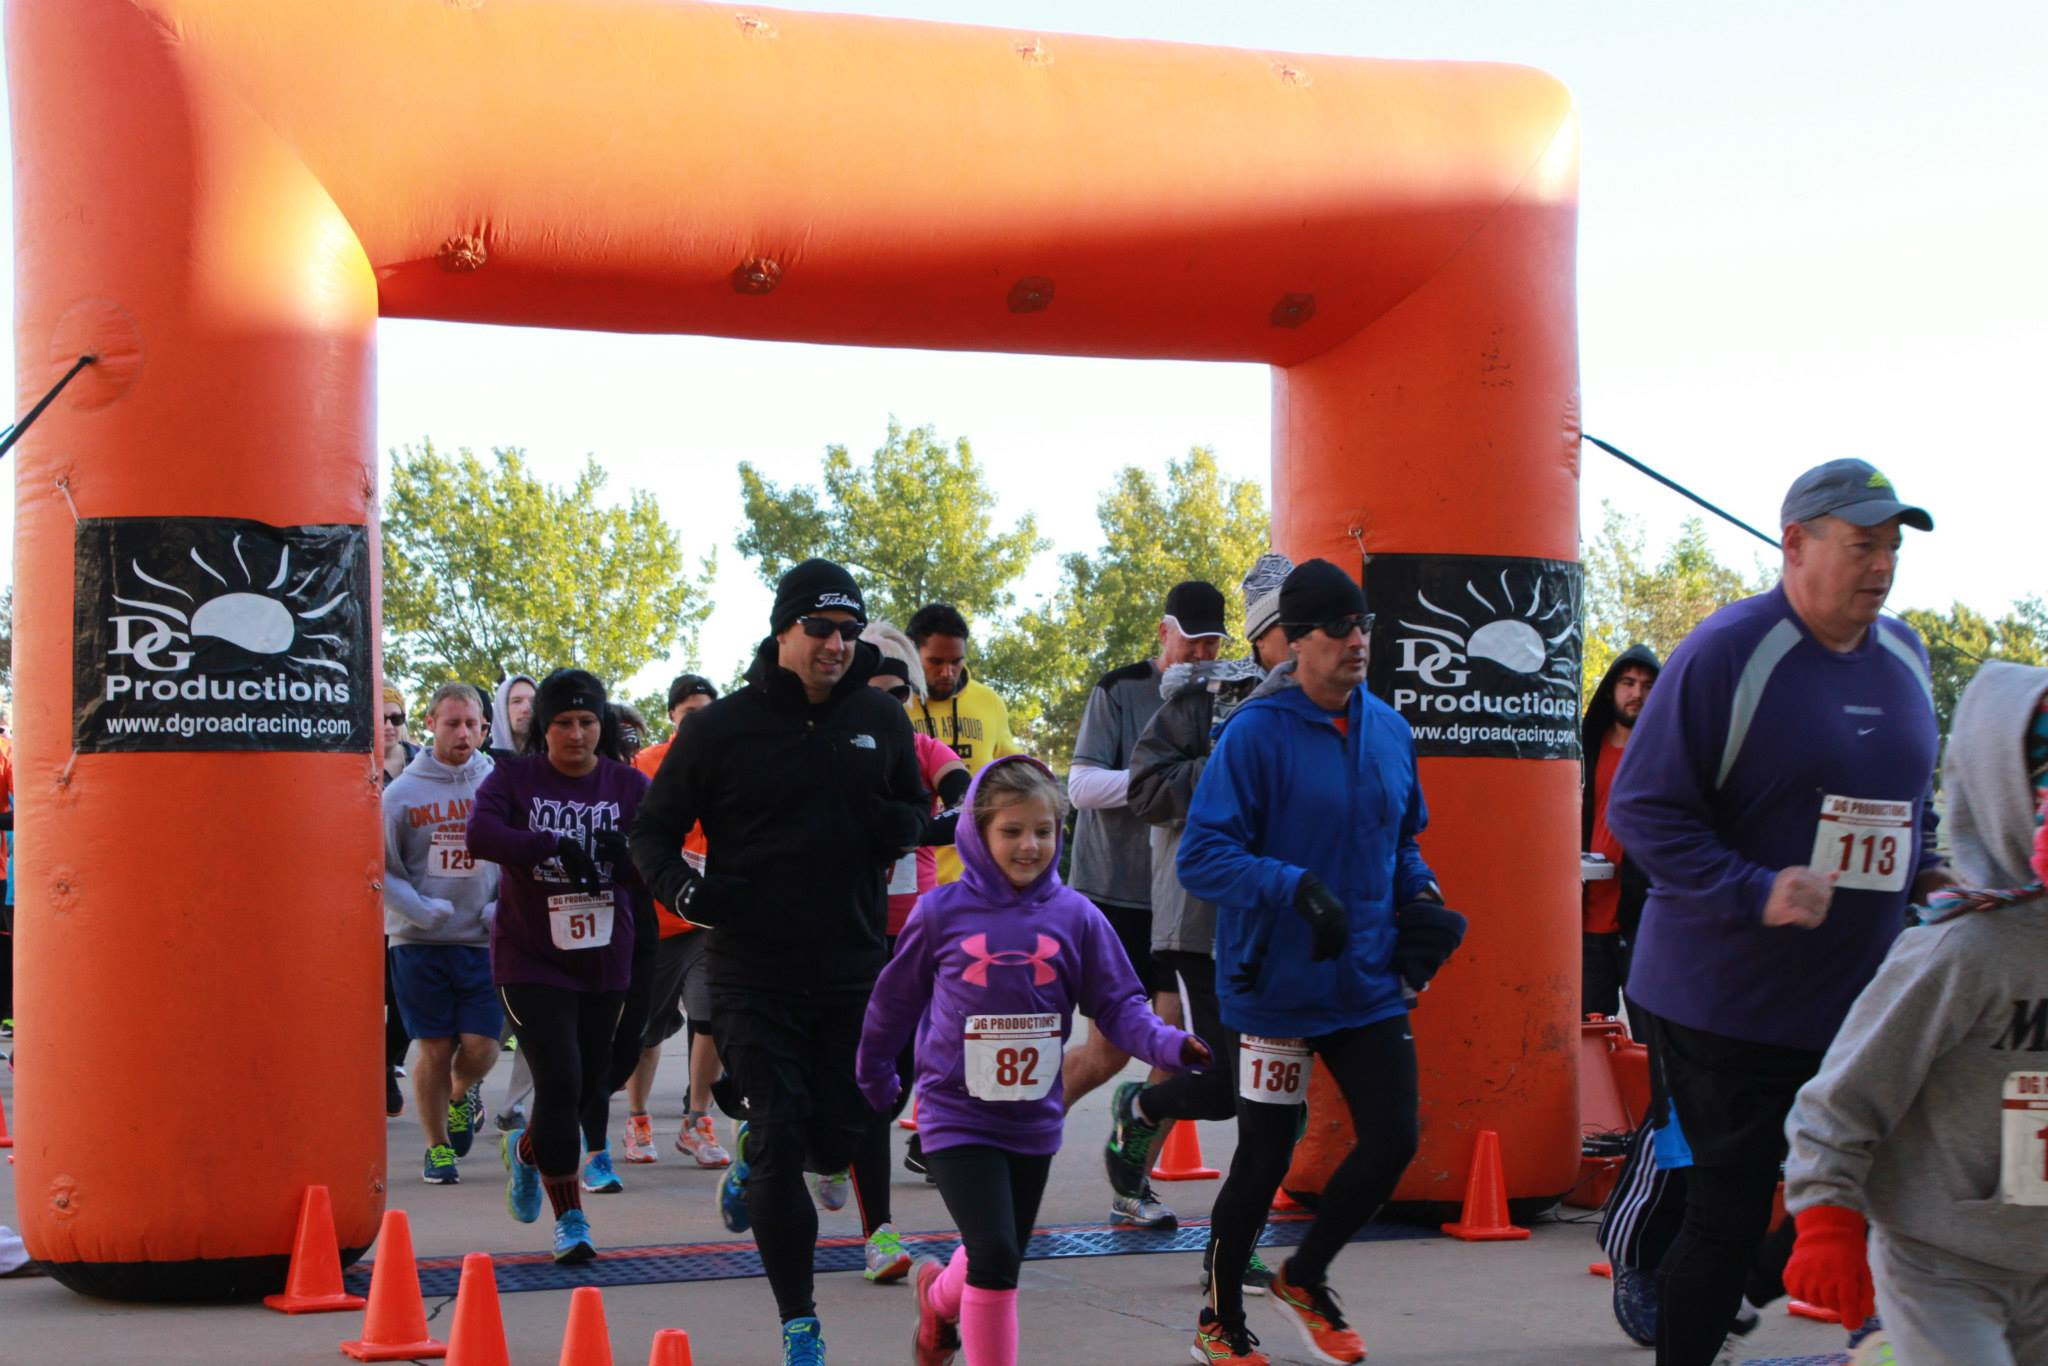 Blue Streak Run to raise money for scholarships and provide winter warmth